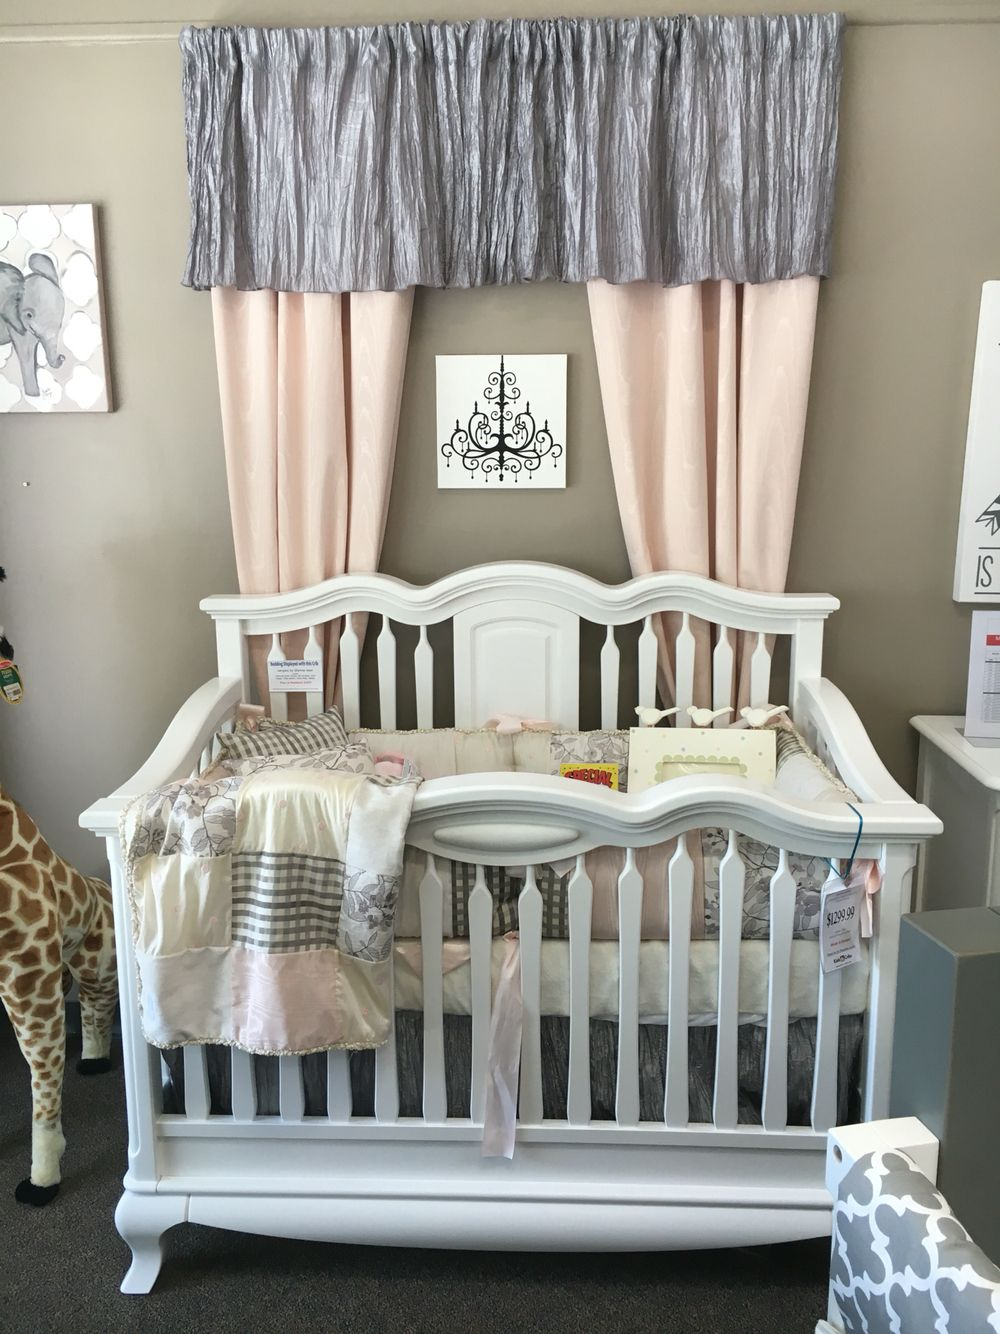 bumper aqua crib and at green in with a pink ruffles floral display pin on cribs romina